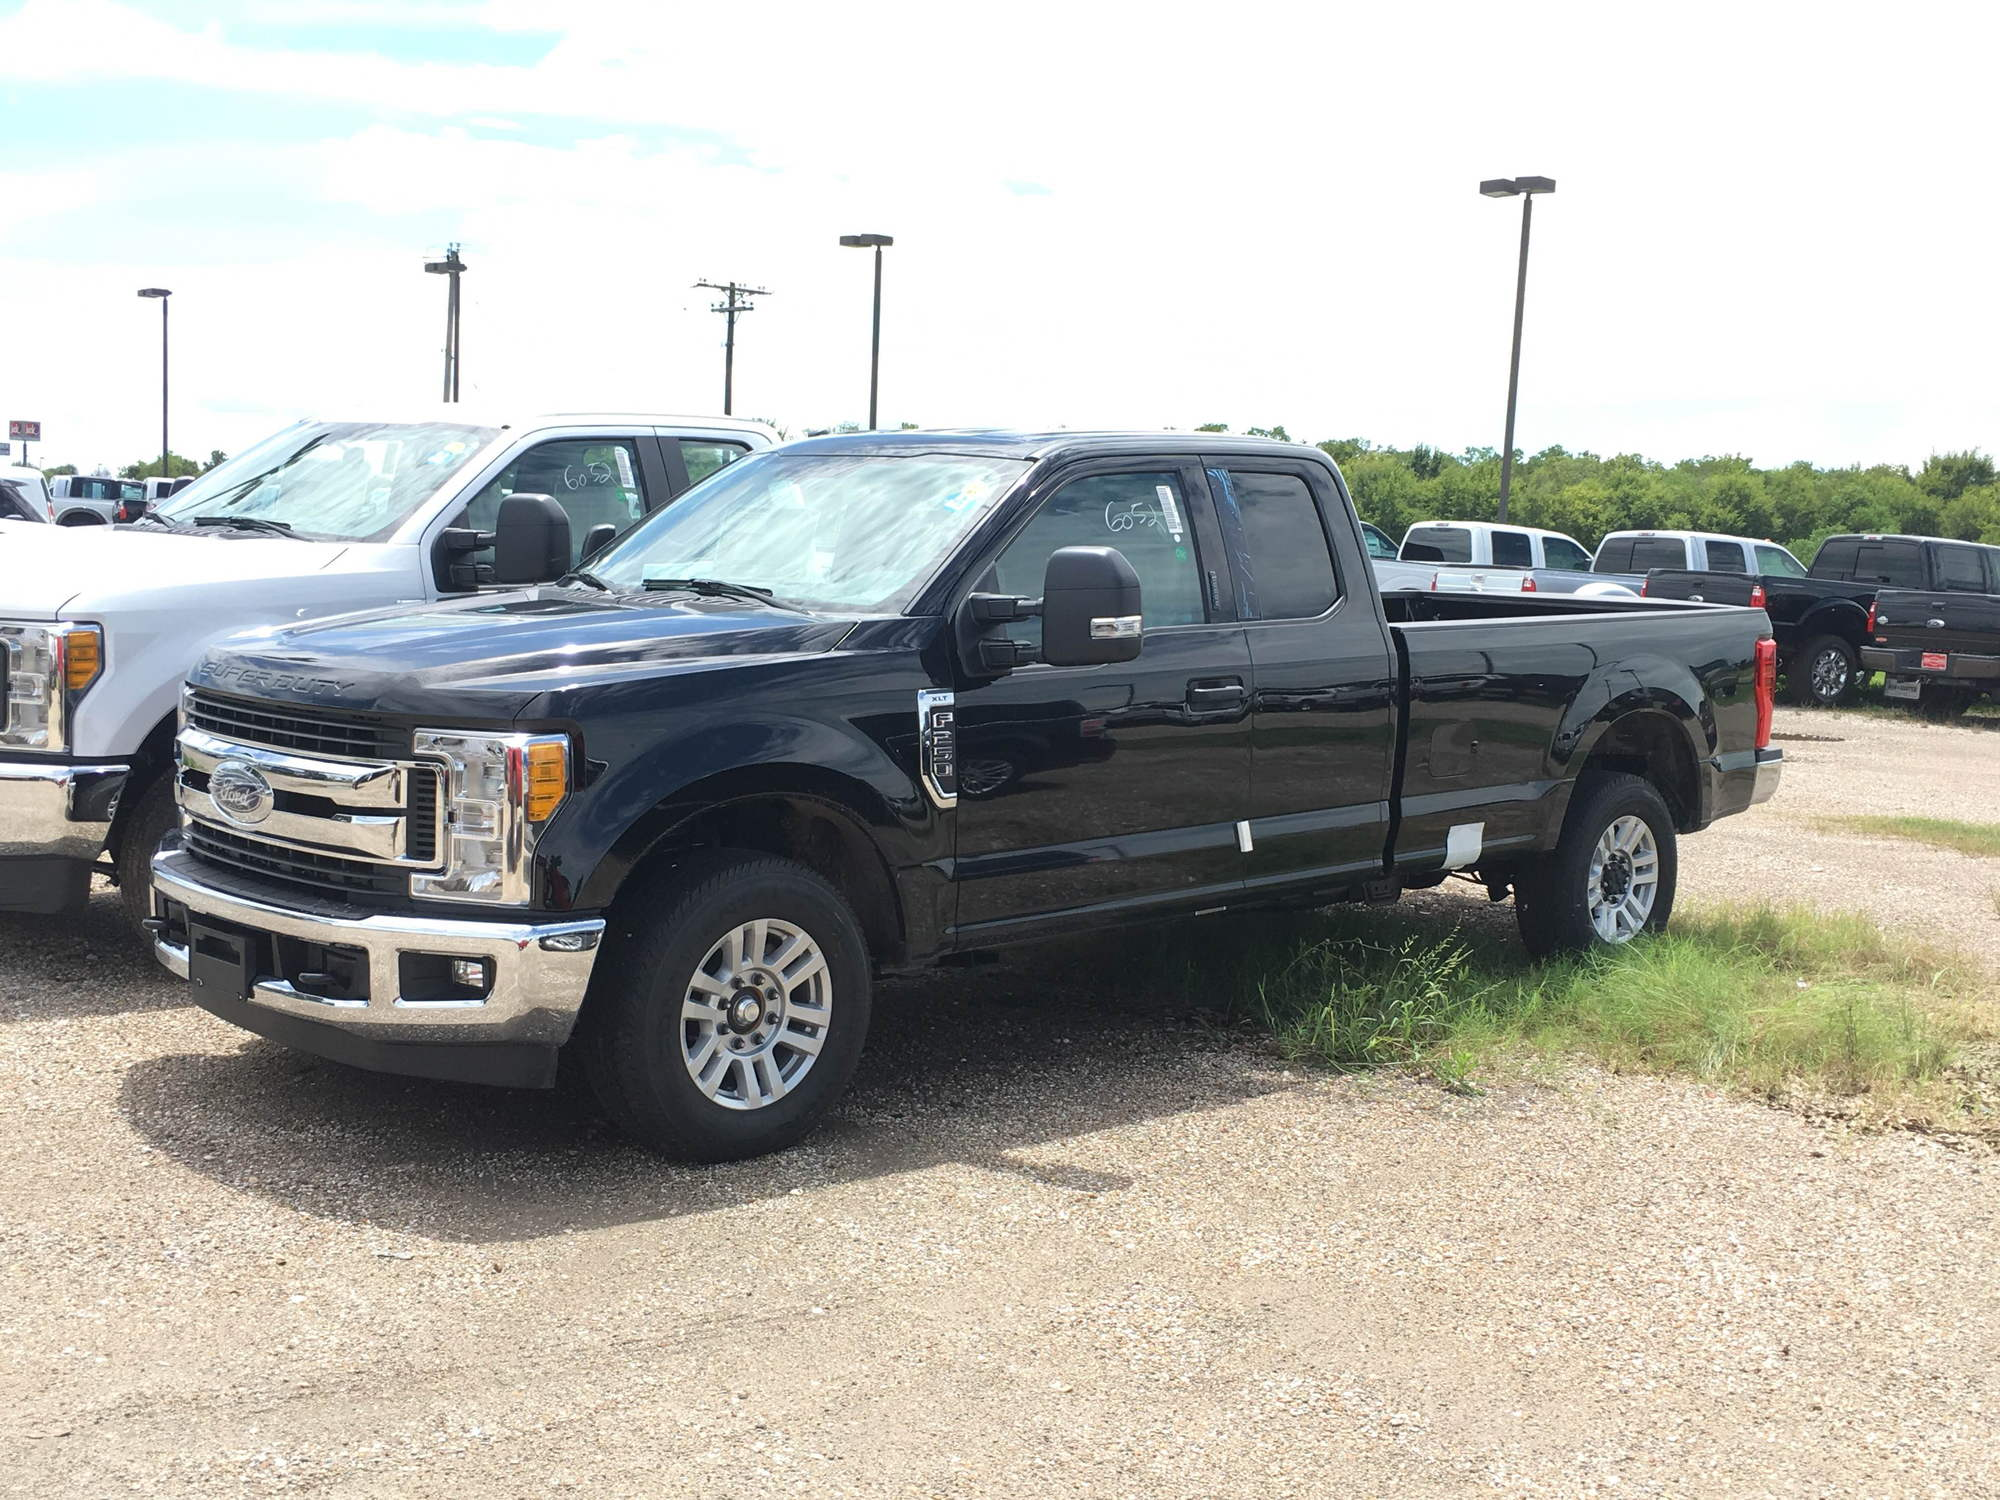 2017 F-350 CC 6.7 Dually Lariat spotted at local dealer ...